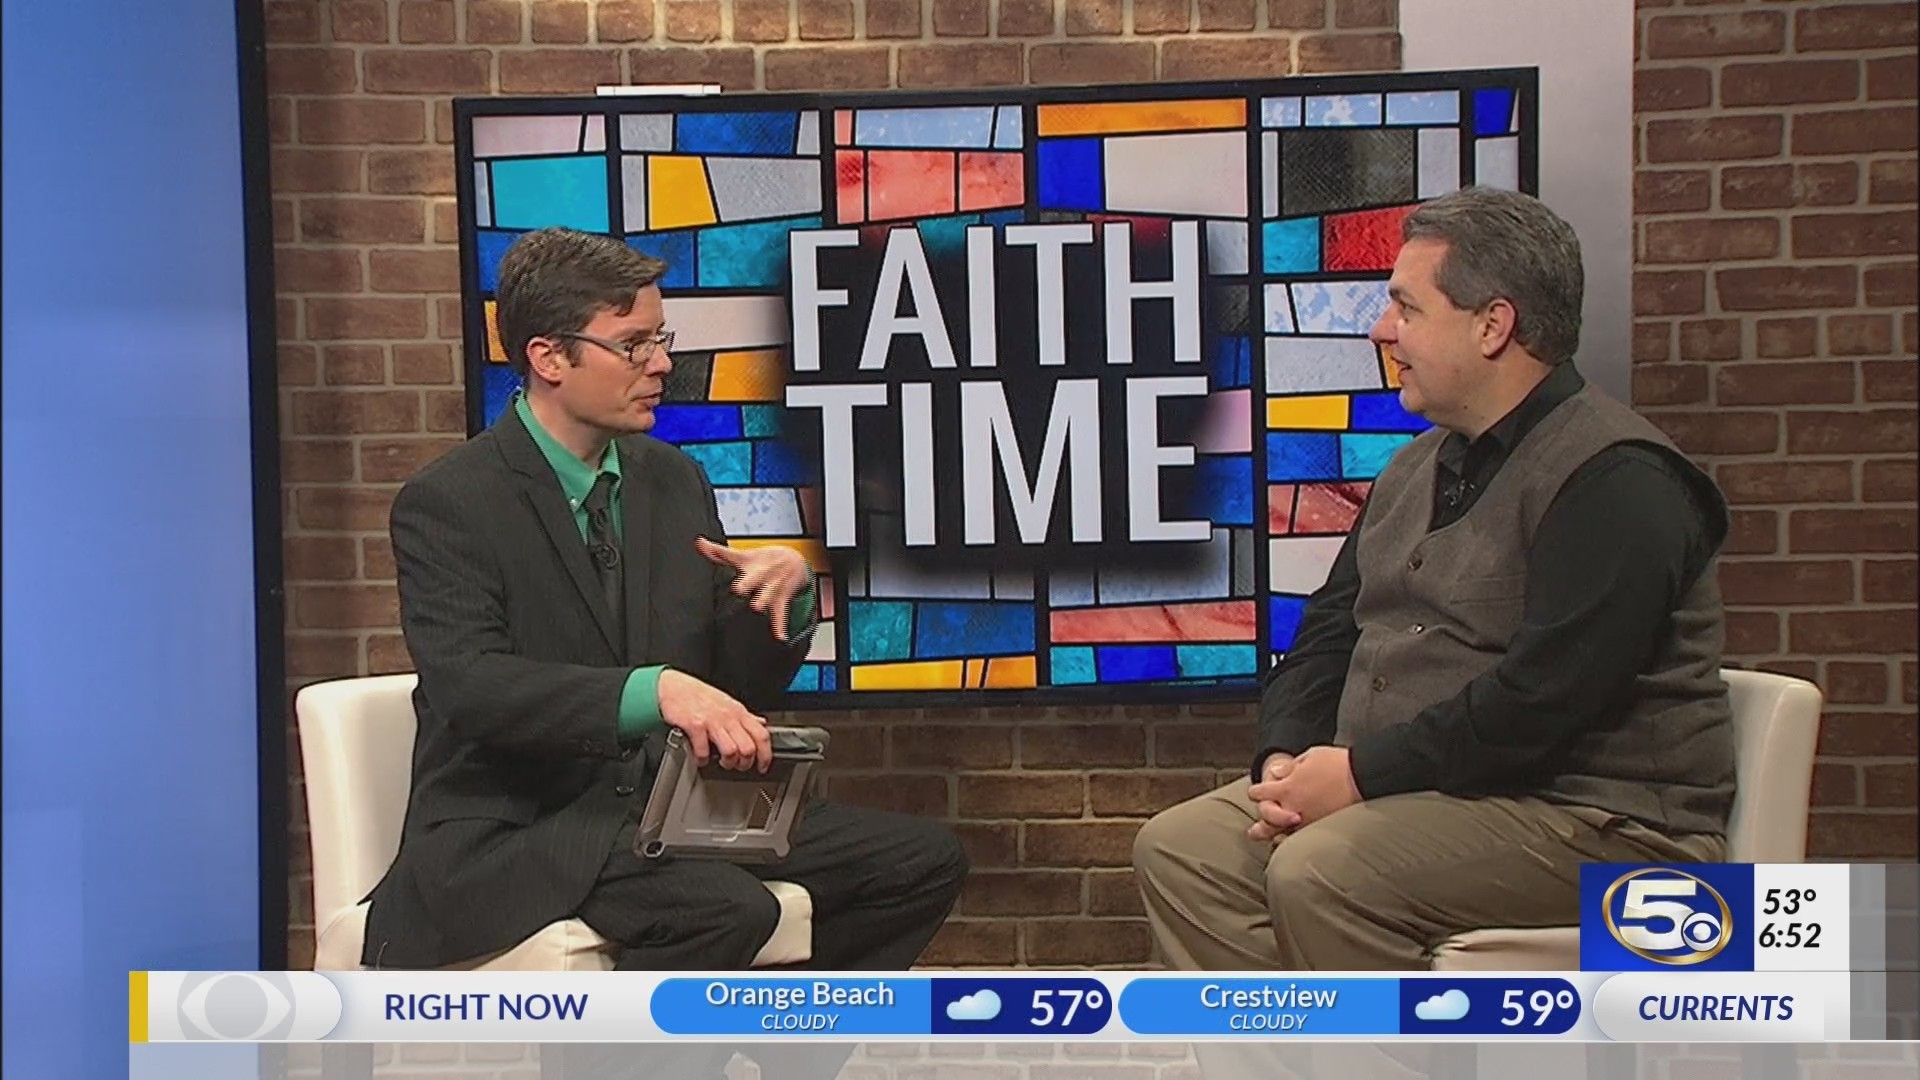 Faith_Time___What_is_a_disciple__0_20190331121923